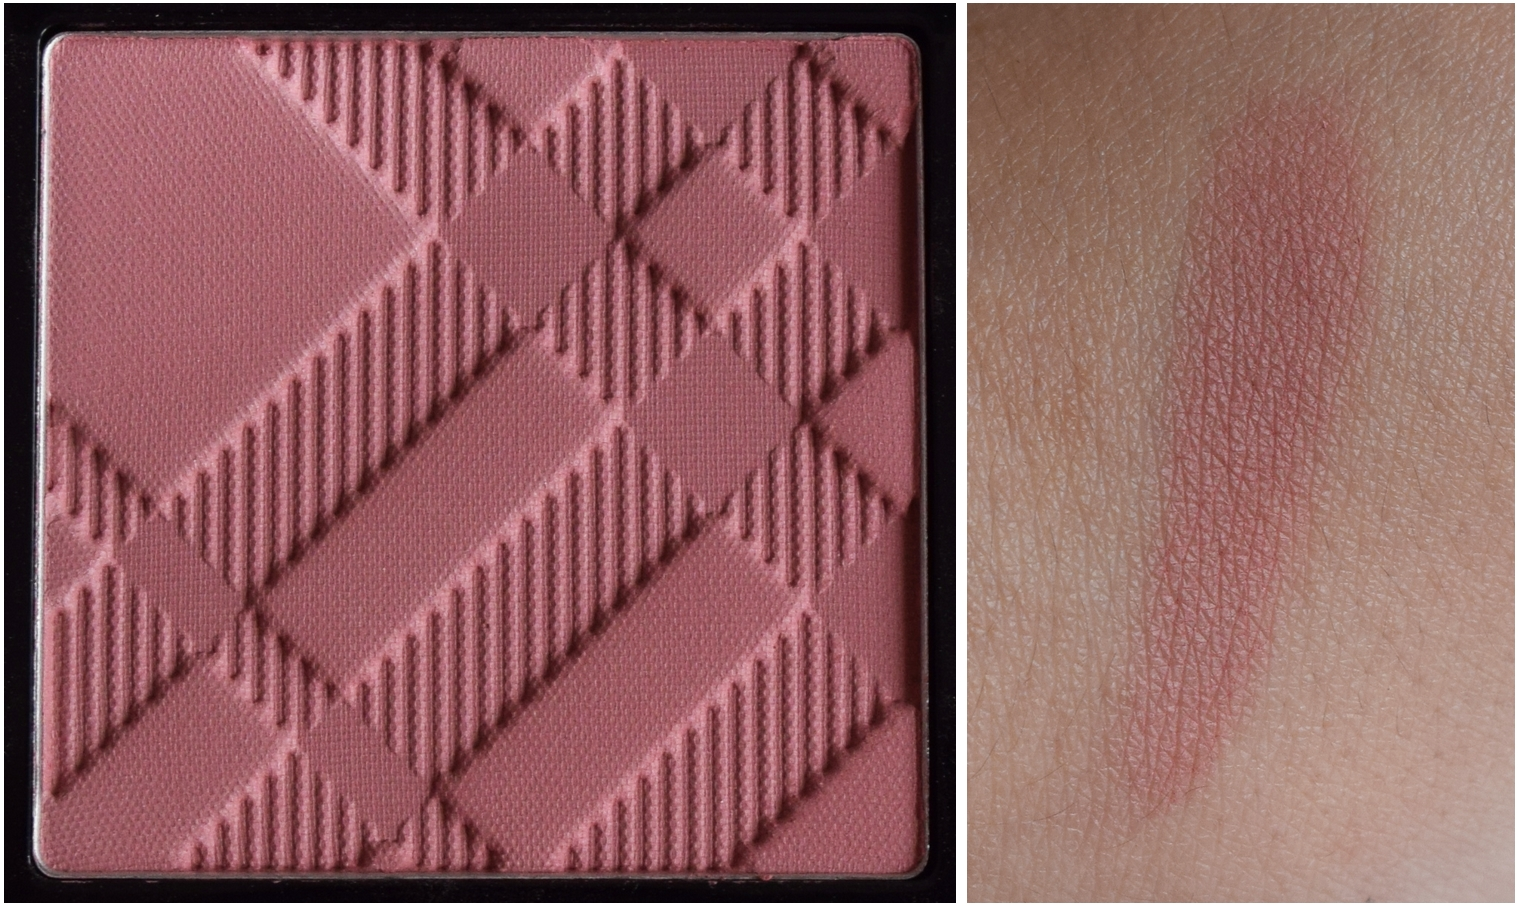 Beauty Burberry Box Lifestyle Beauté DreamBlog Purple Et shQxdtrCB